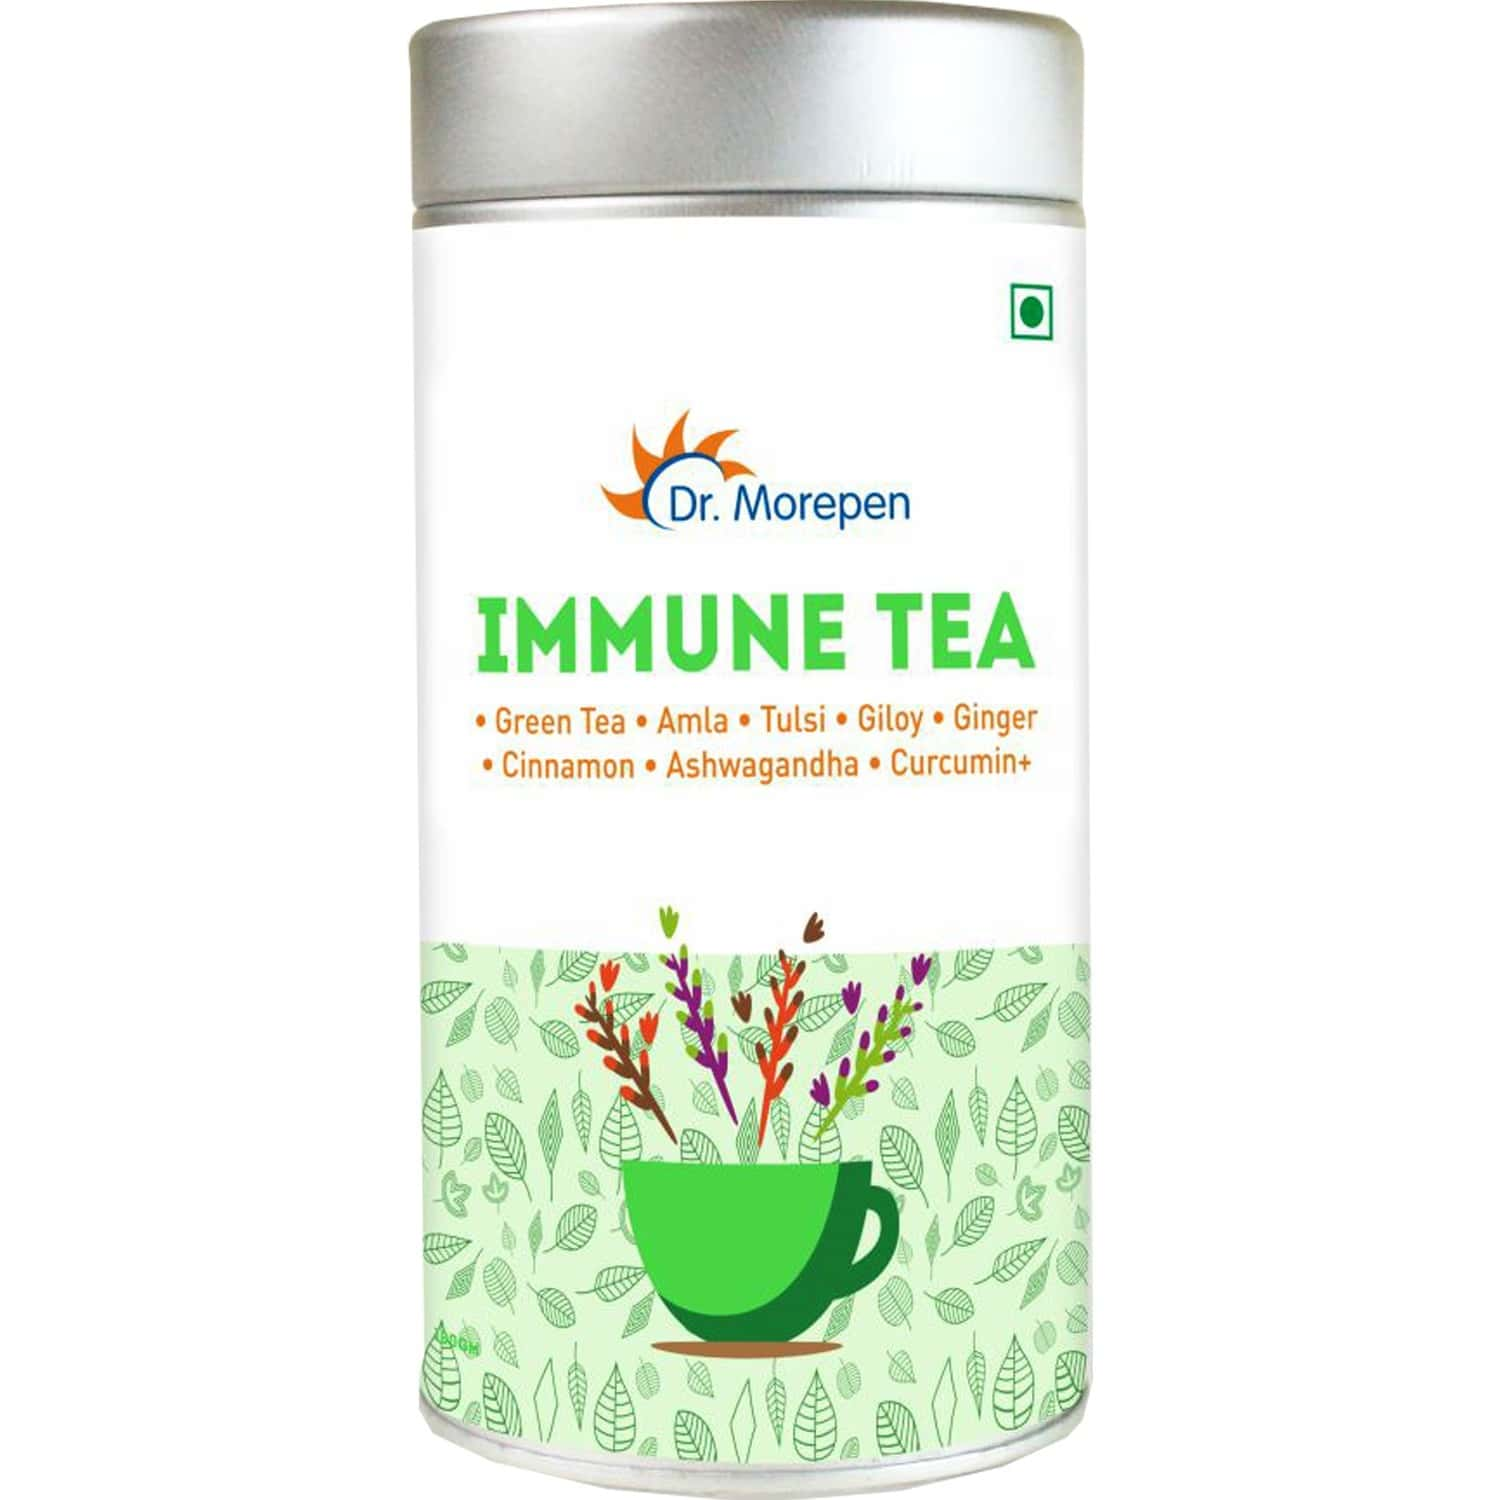 Dr. Morepen Immune Immunity Booster Tea With Mint For Body Detox, Weight Management & Stress Relief - 100g